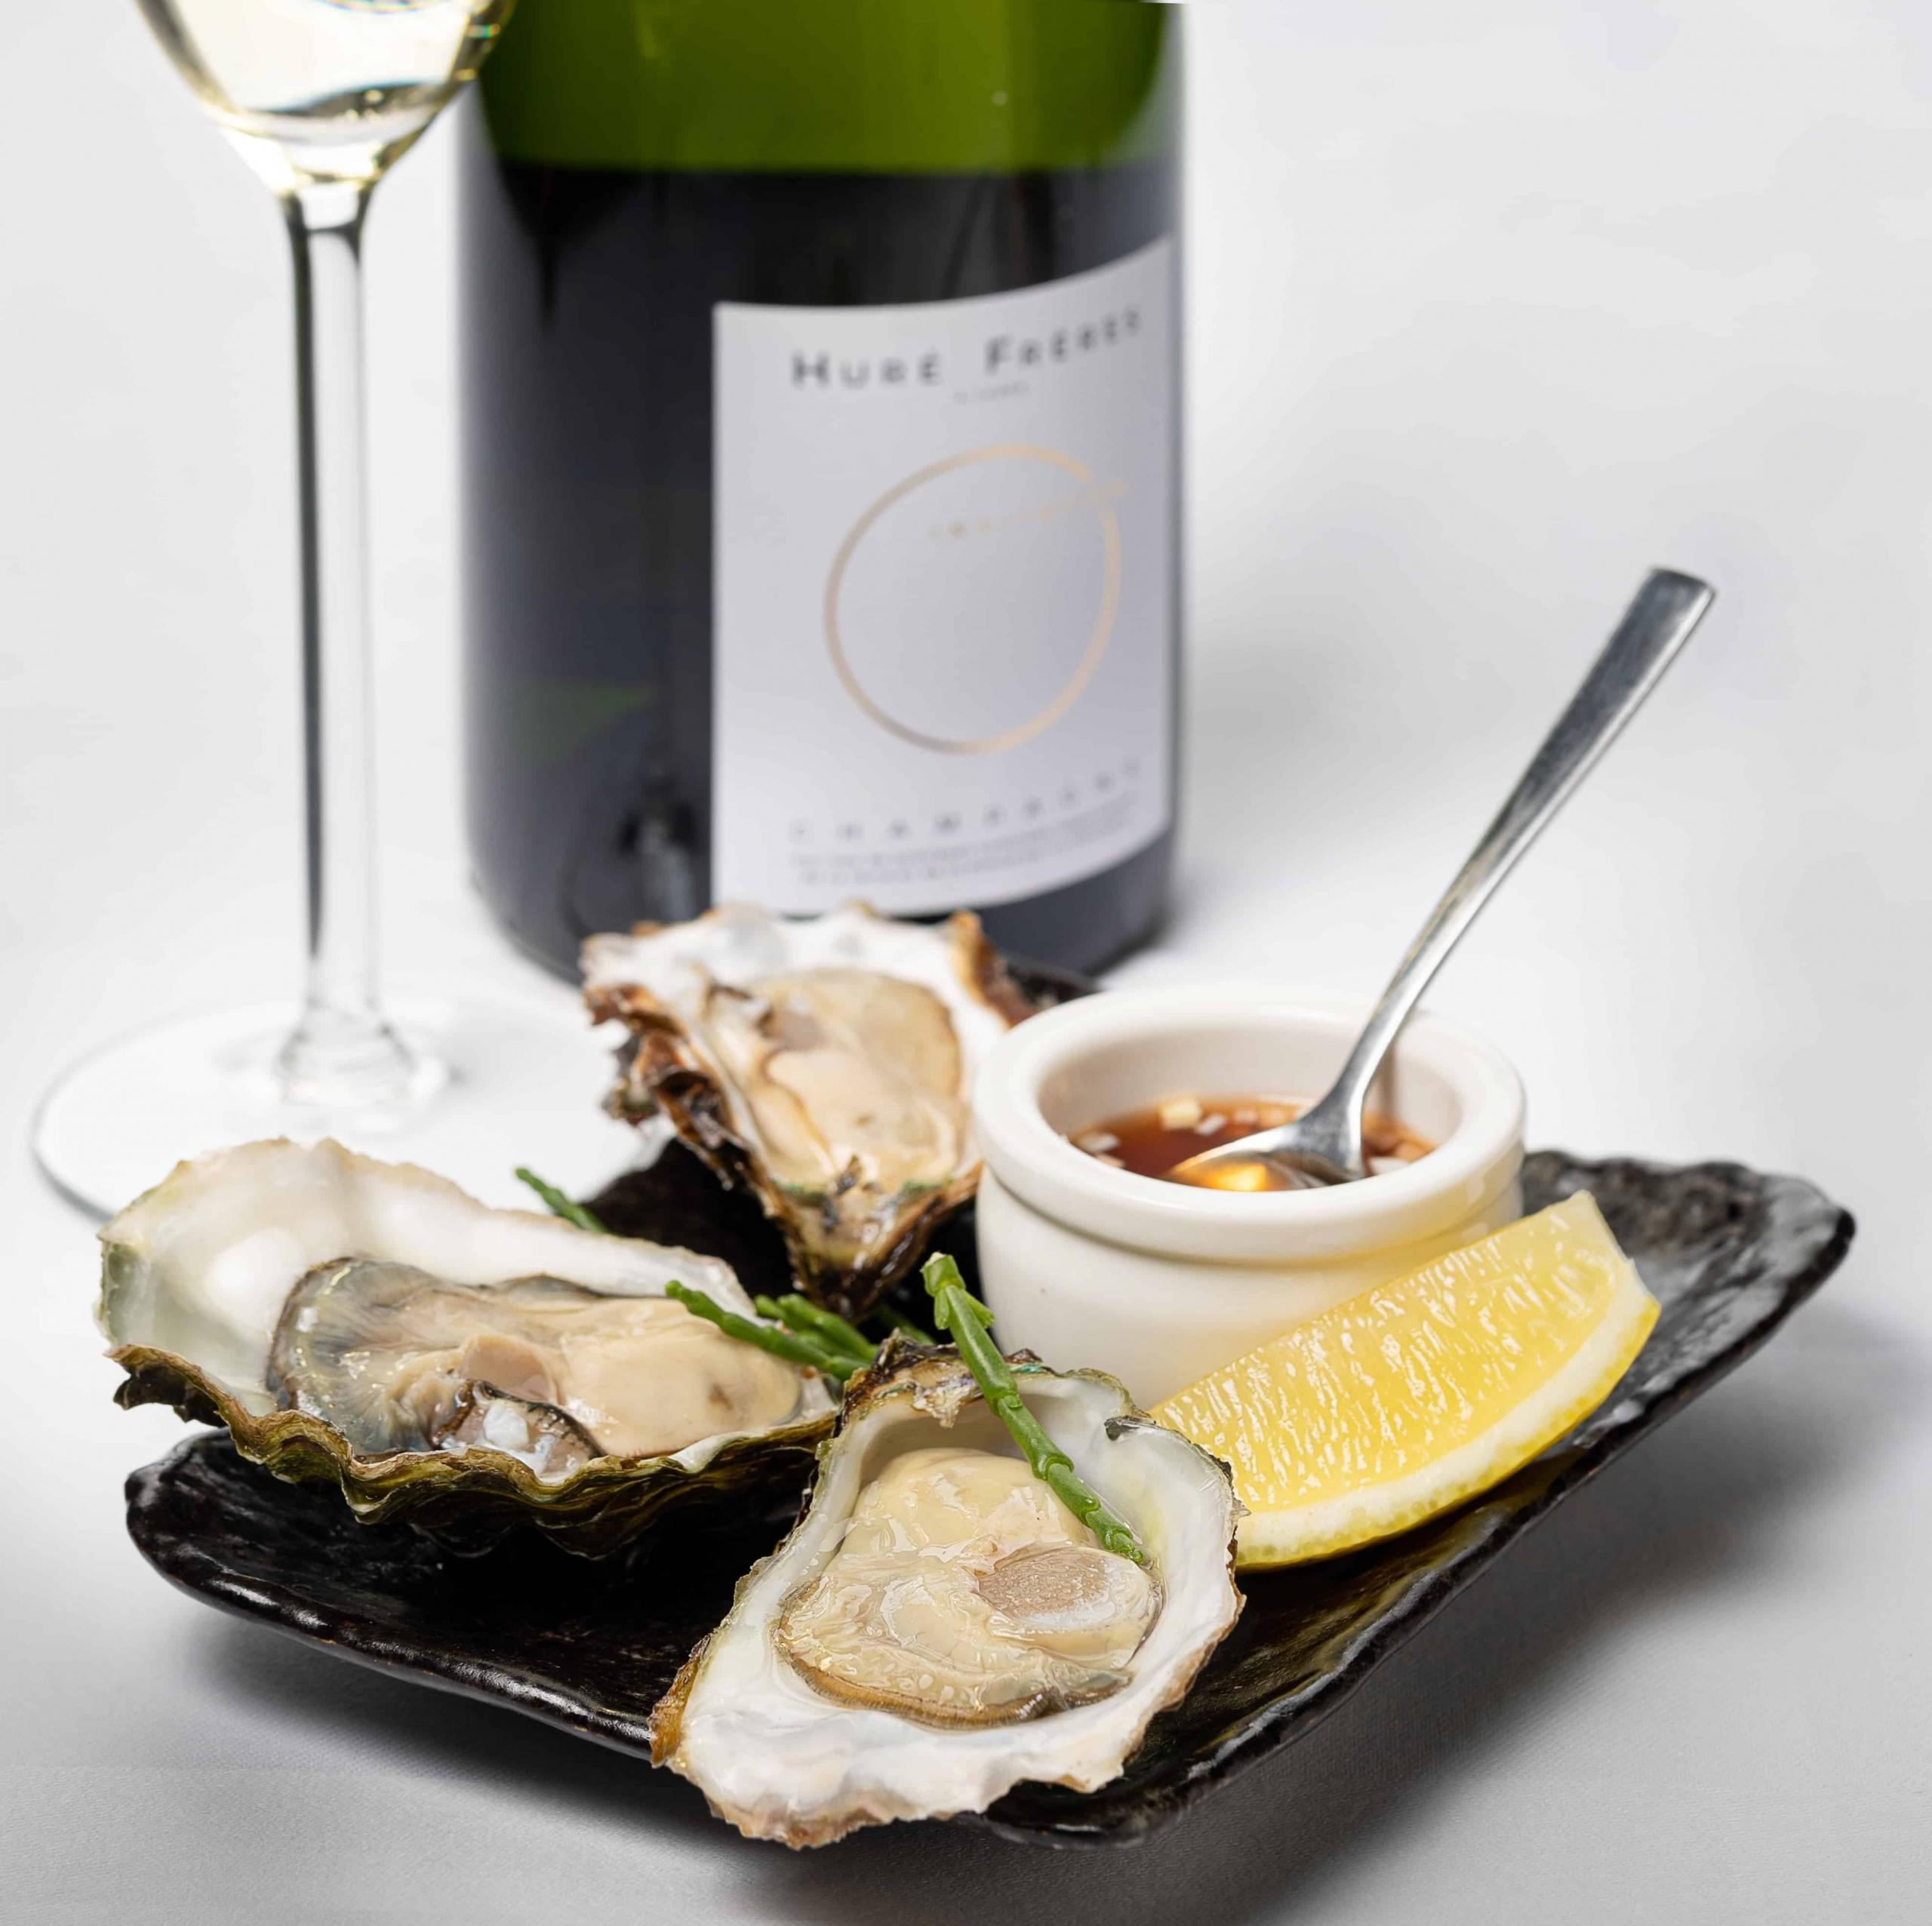 Zeeland oysters with Hure Freres Champagne